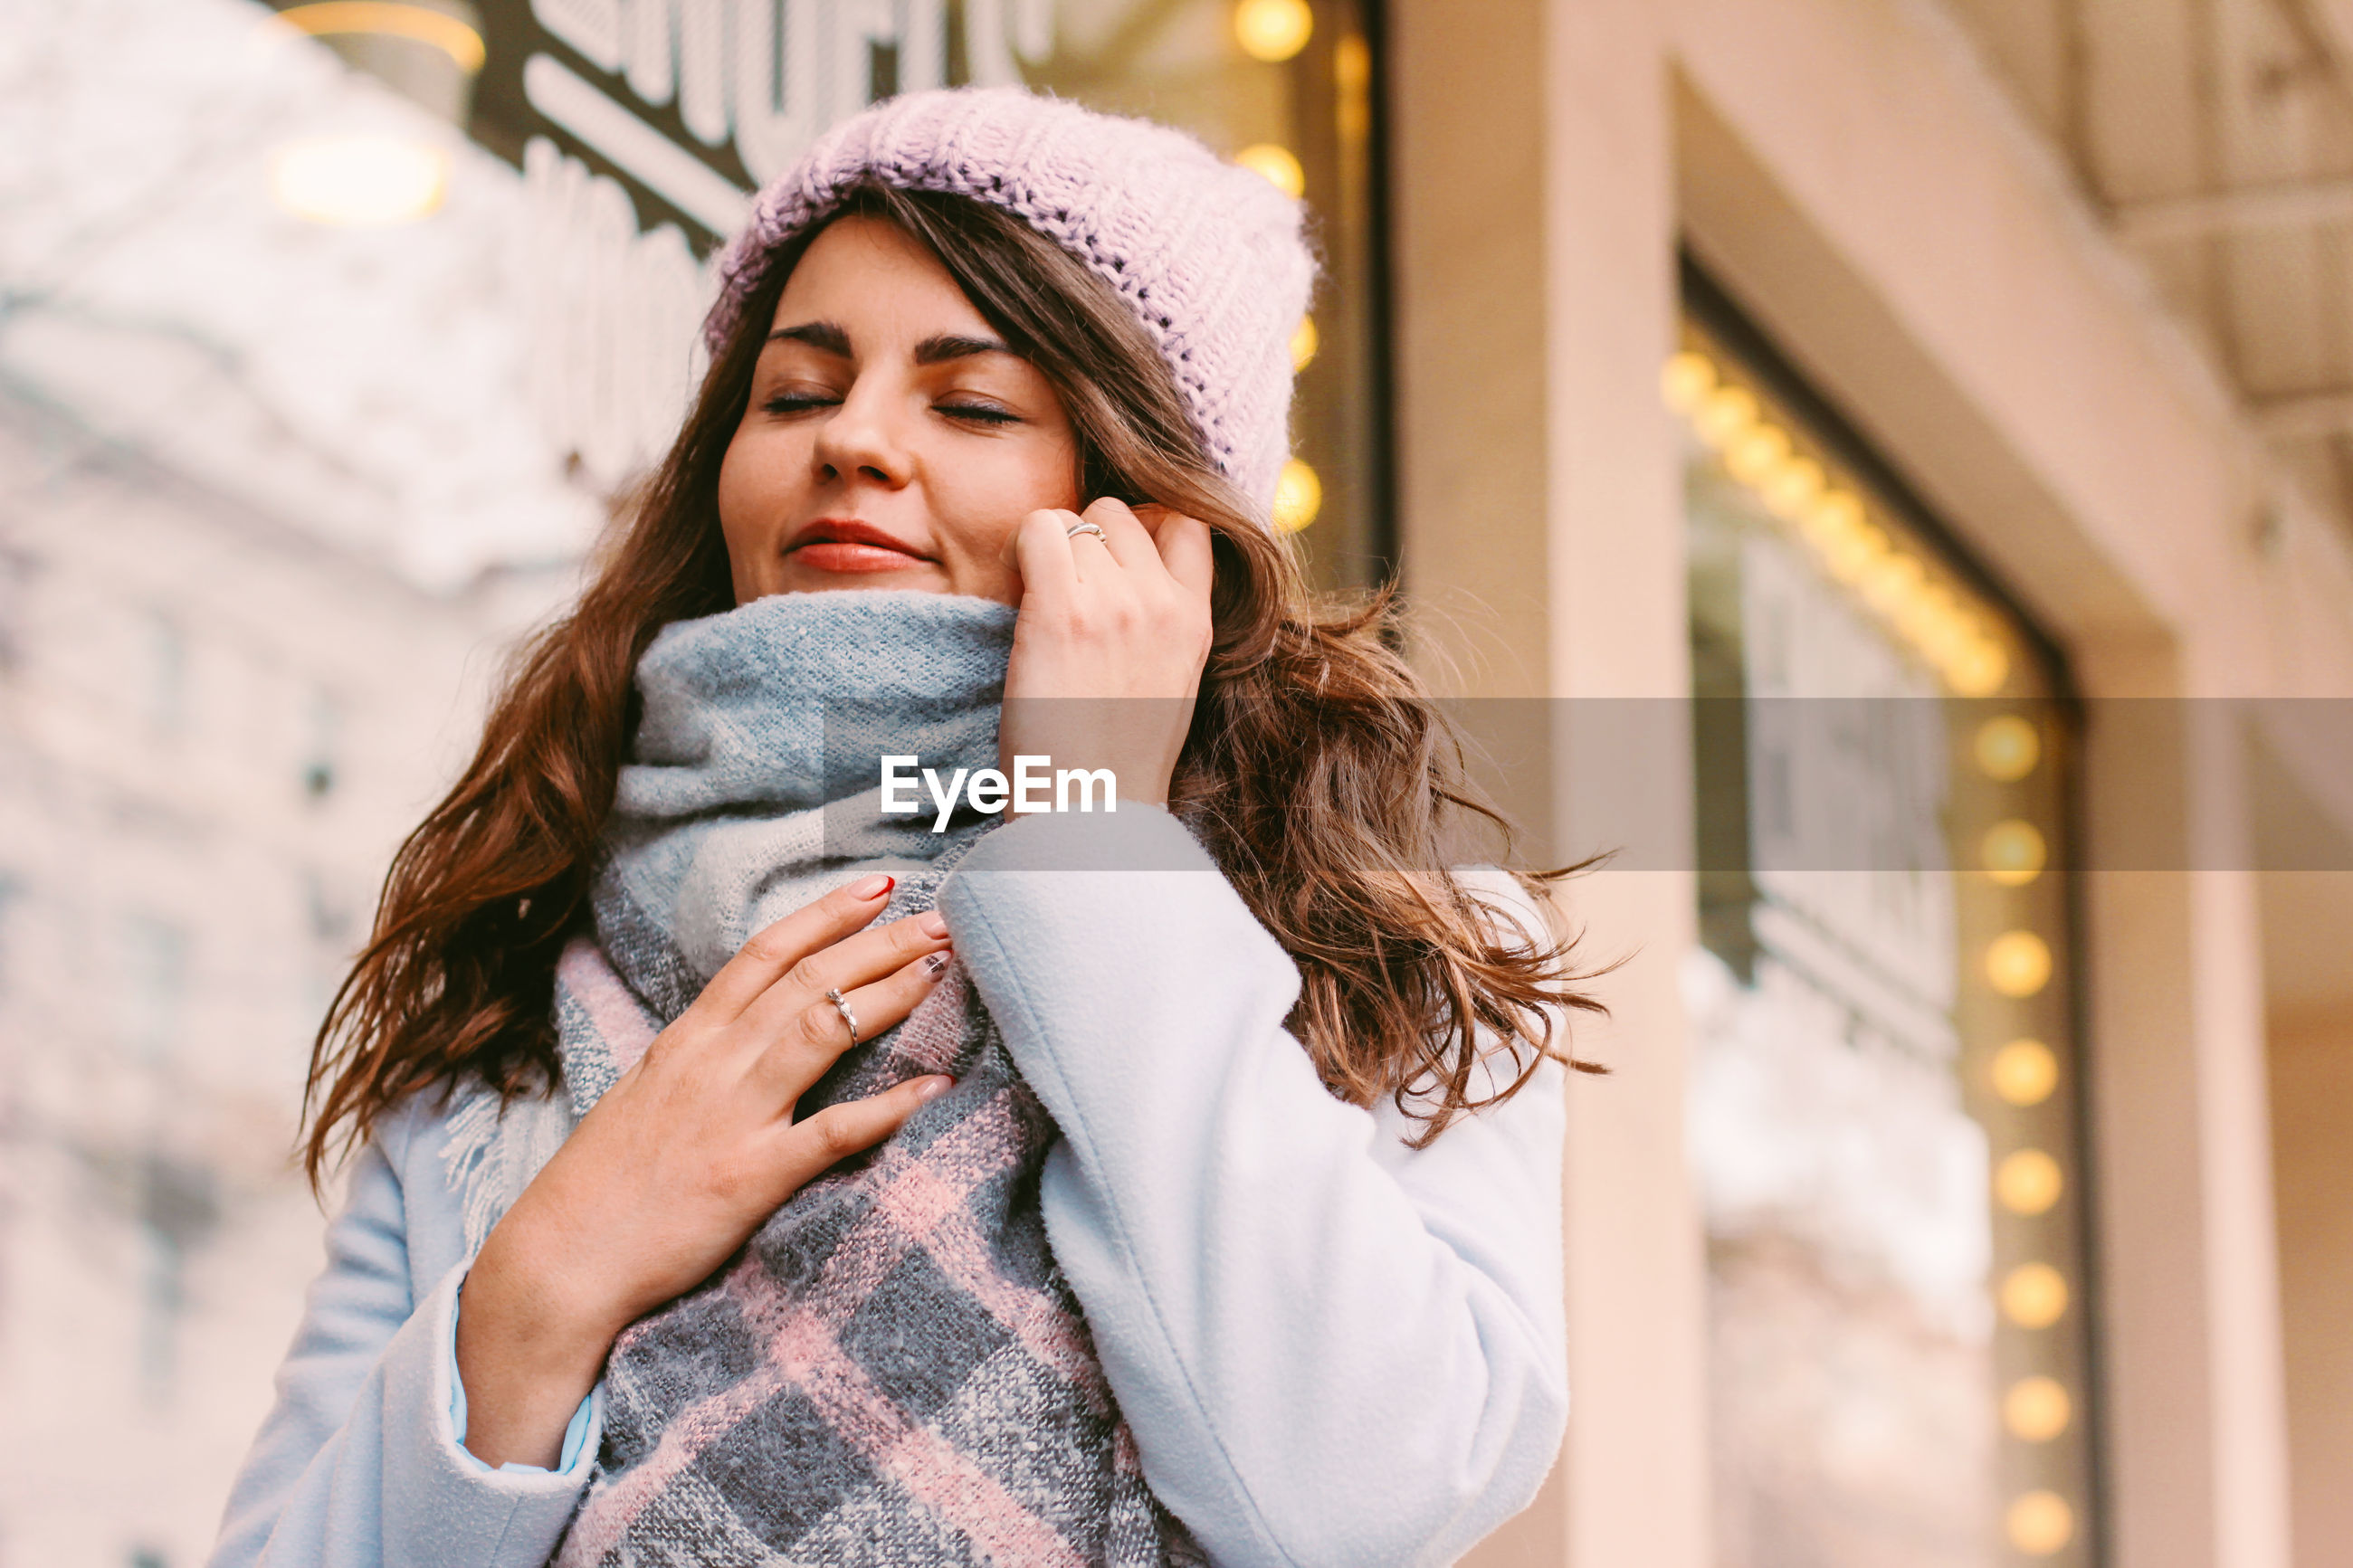 Woman in city during winter